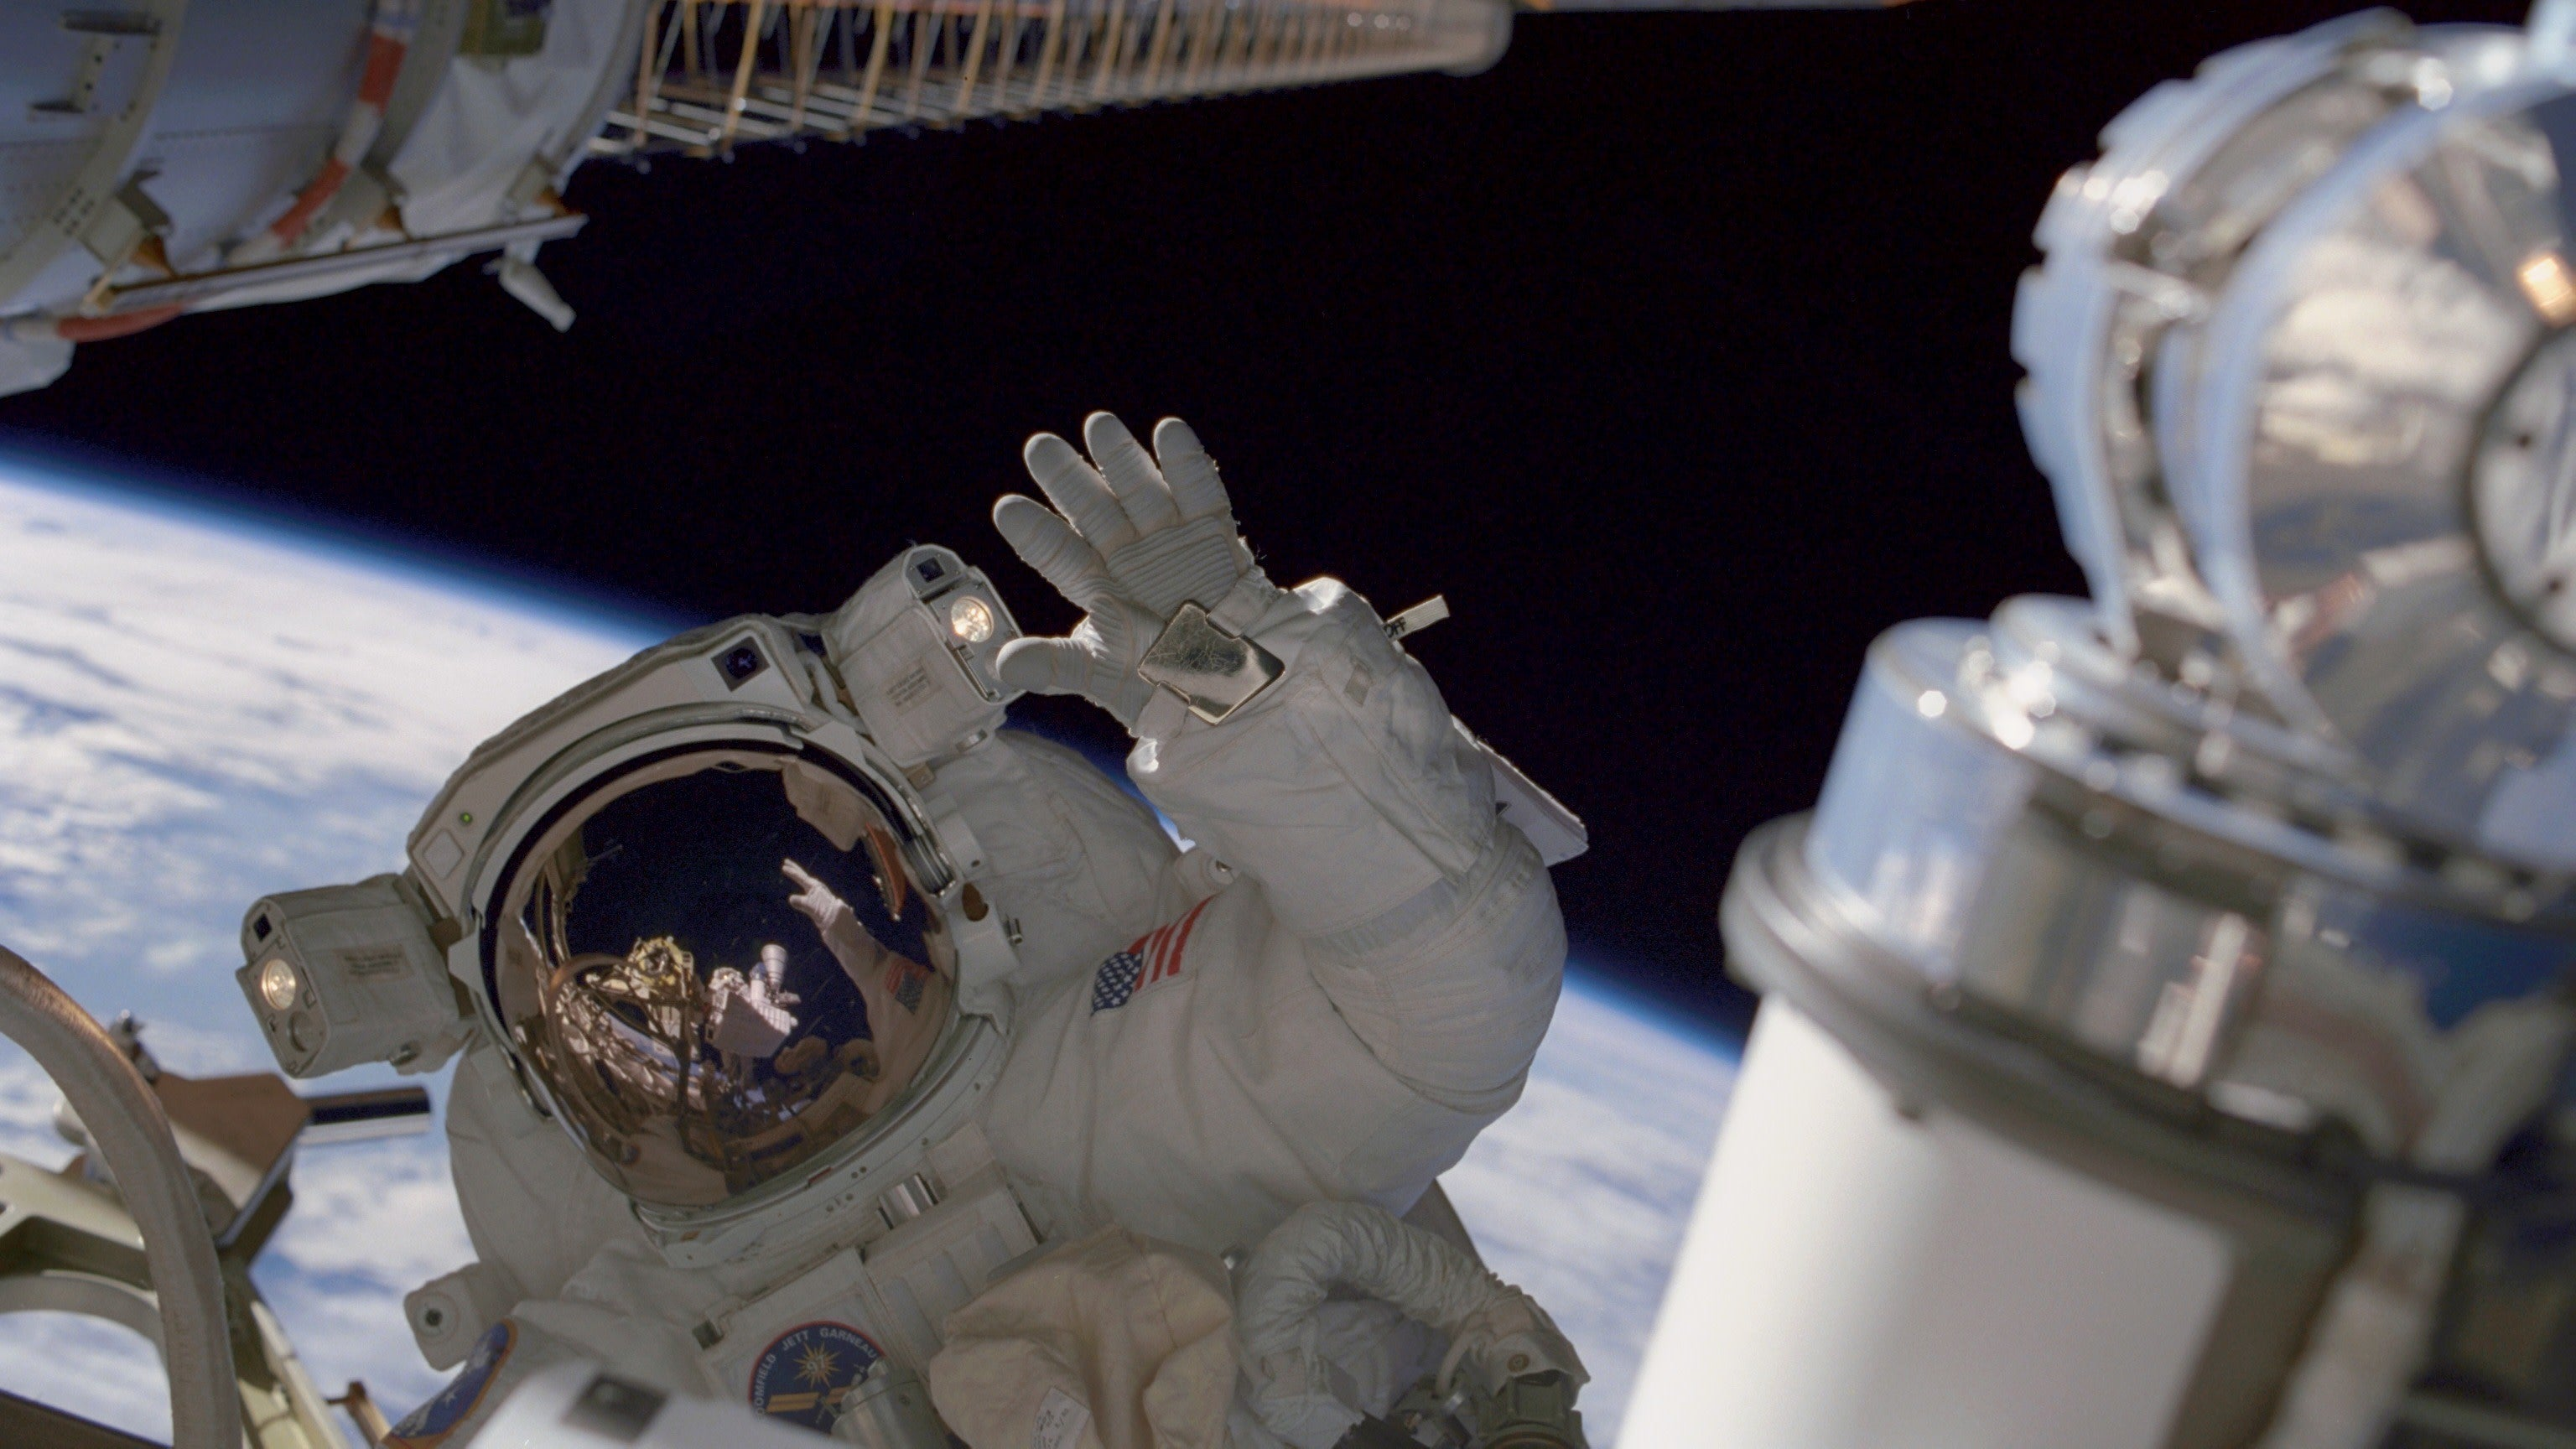 Astronauts Aren't Dying From Space Radiation, New Research Suggests